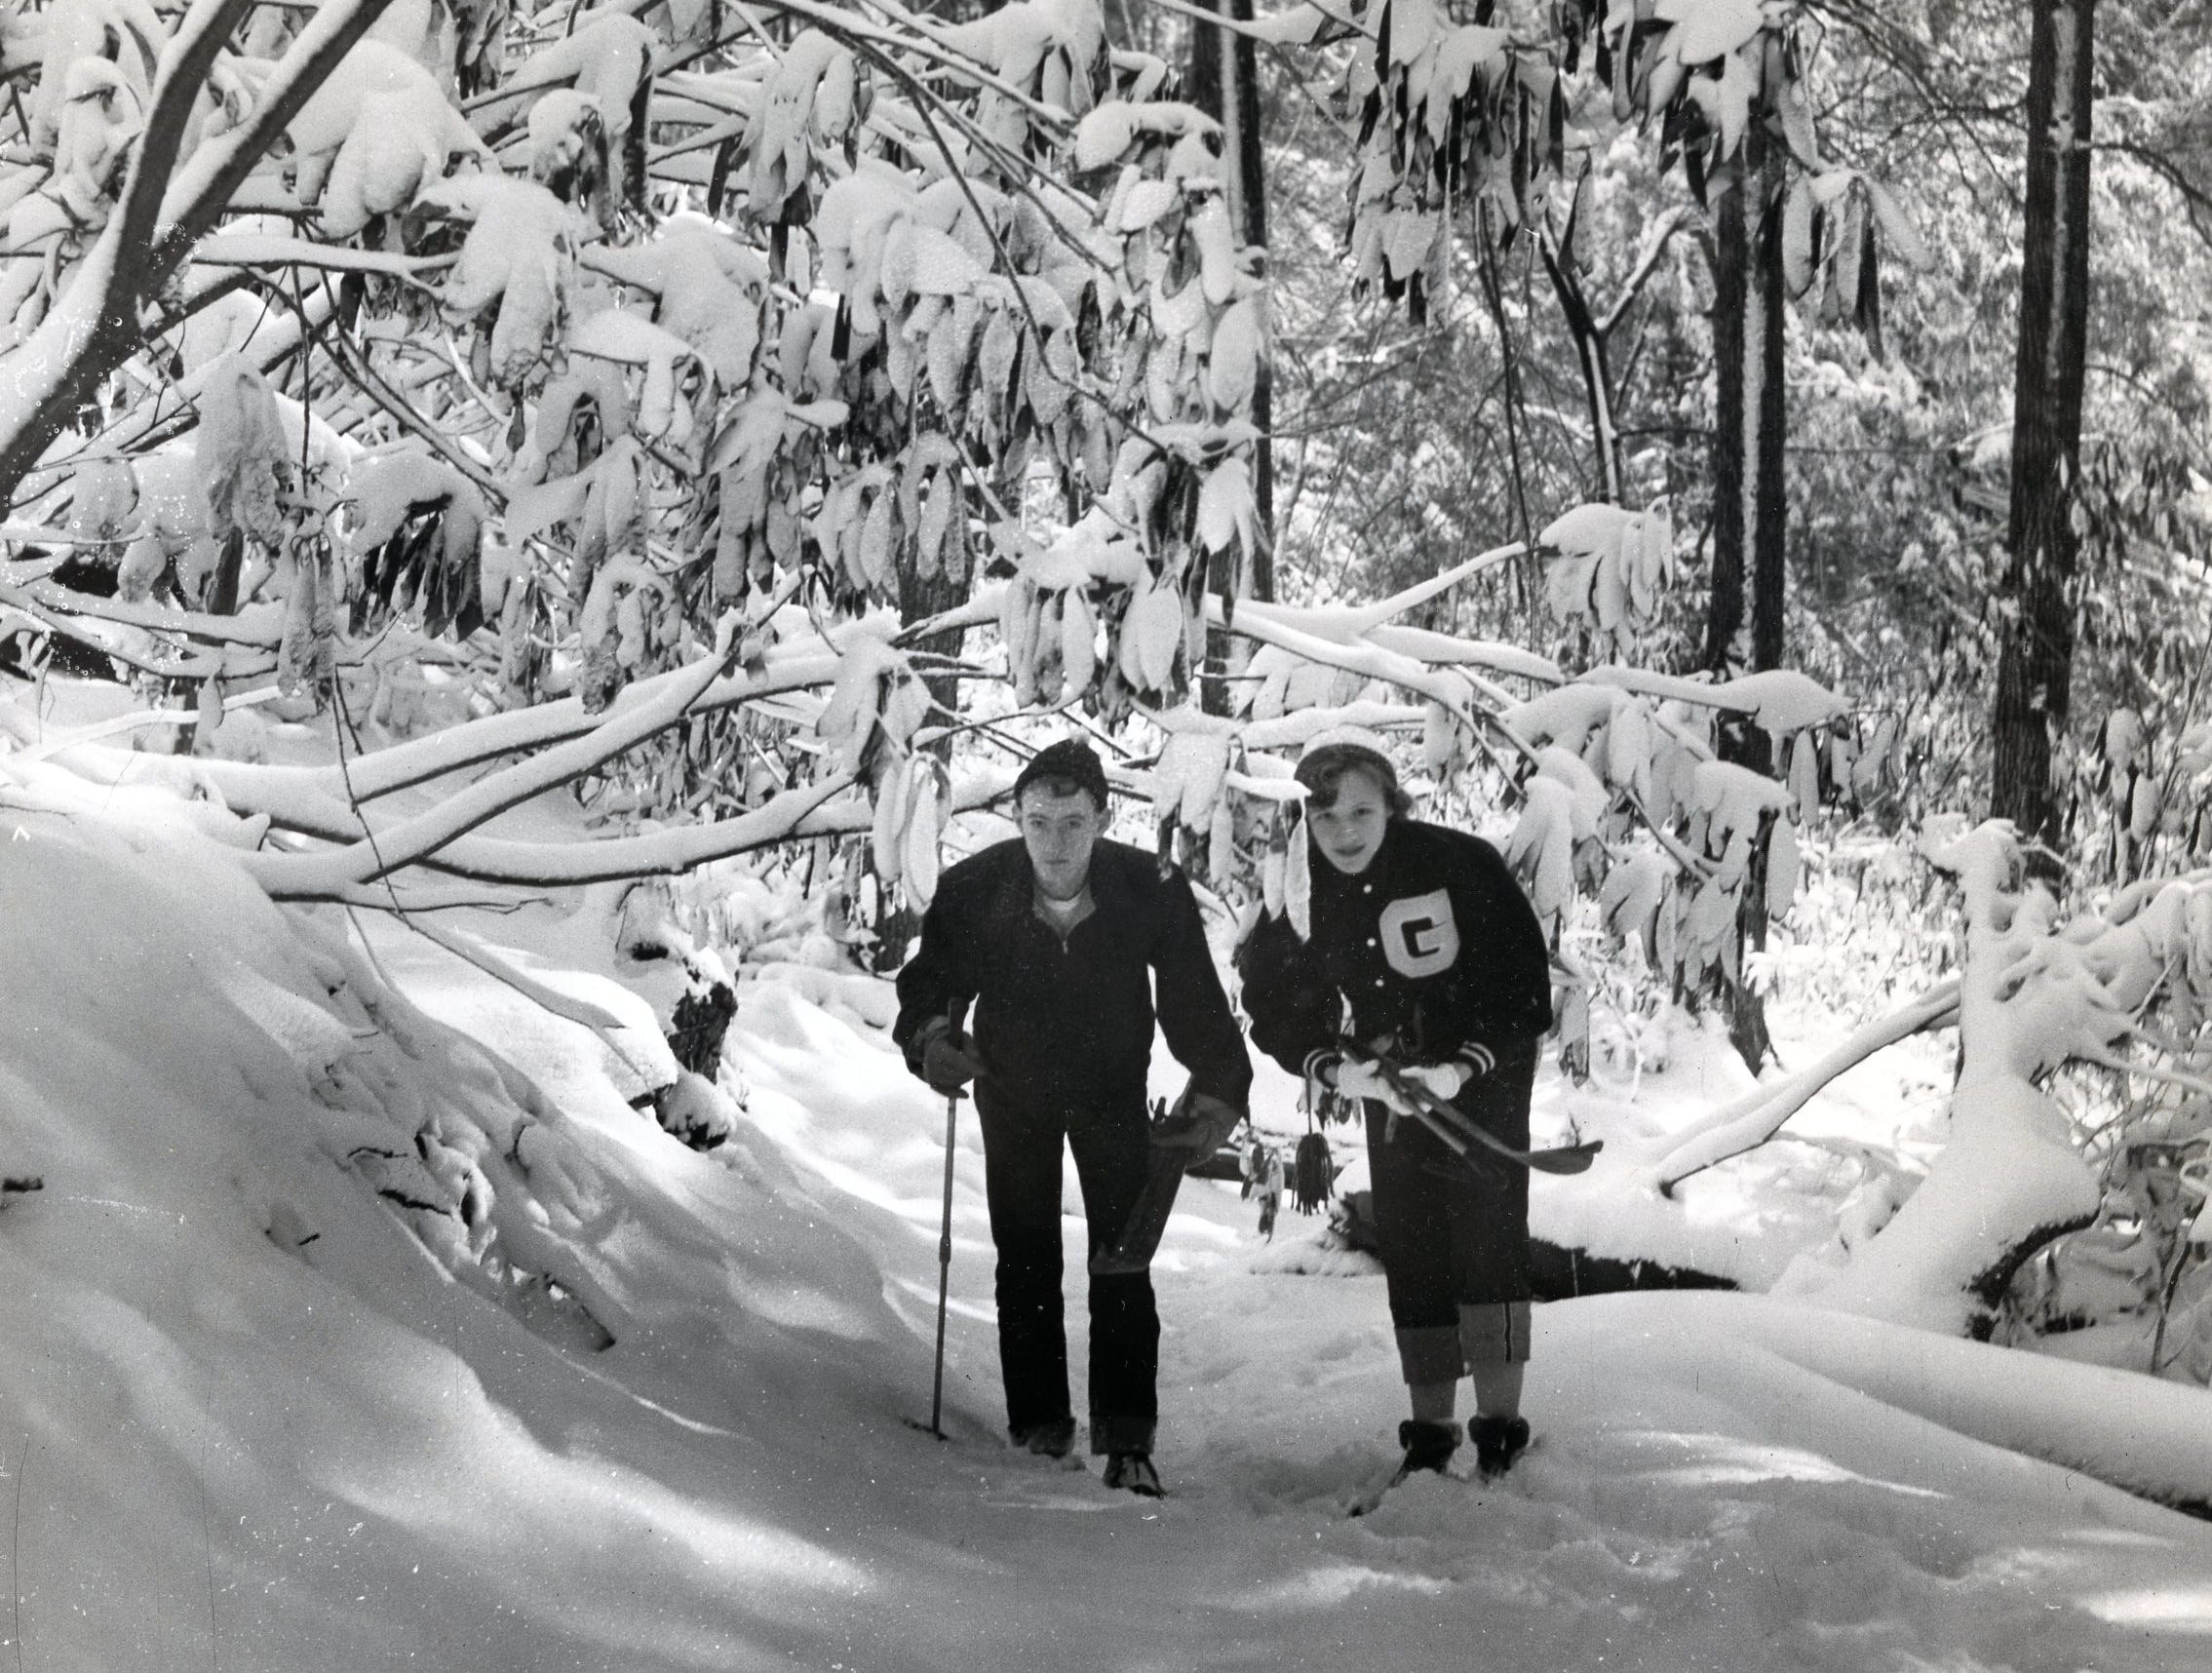 Jim Huff, 17 and Connie Cox, 15 explore the snow in the Smokies with Pi Delta Phi School in Gatlinburg, December 1955.